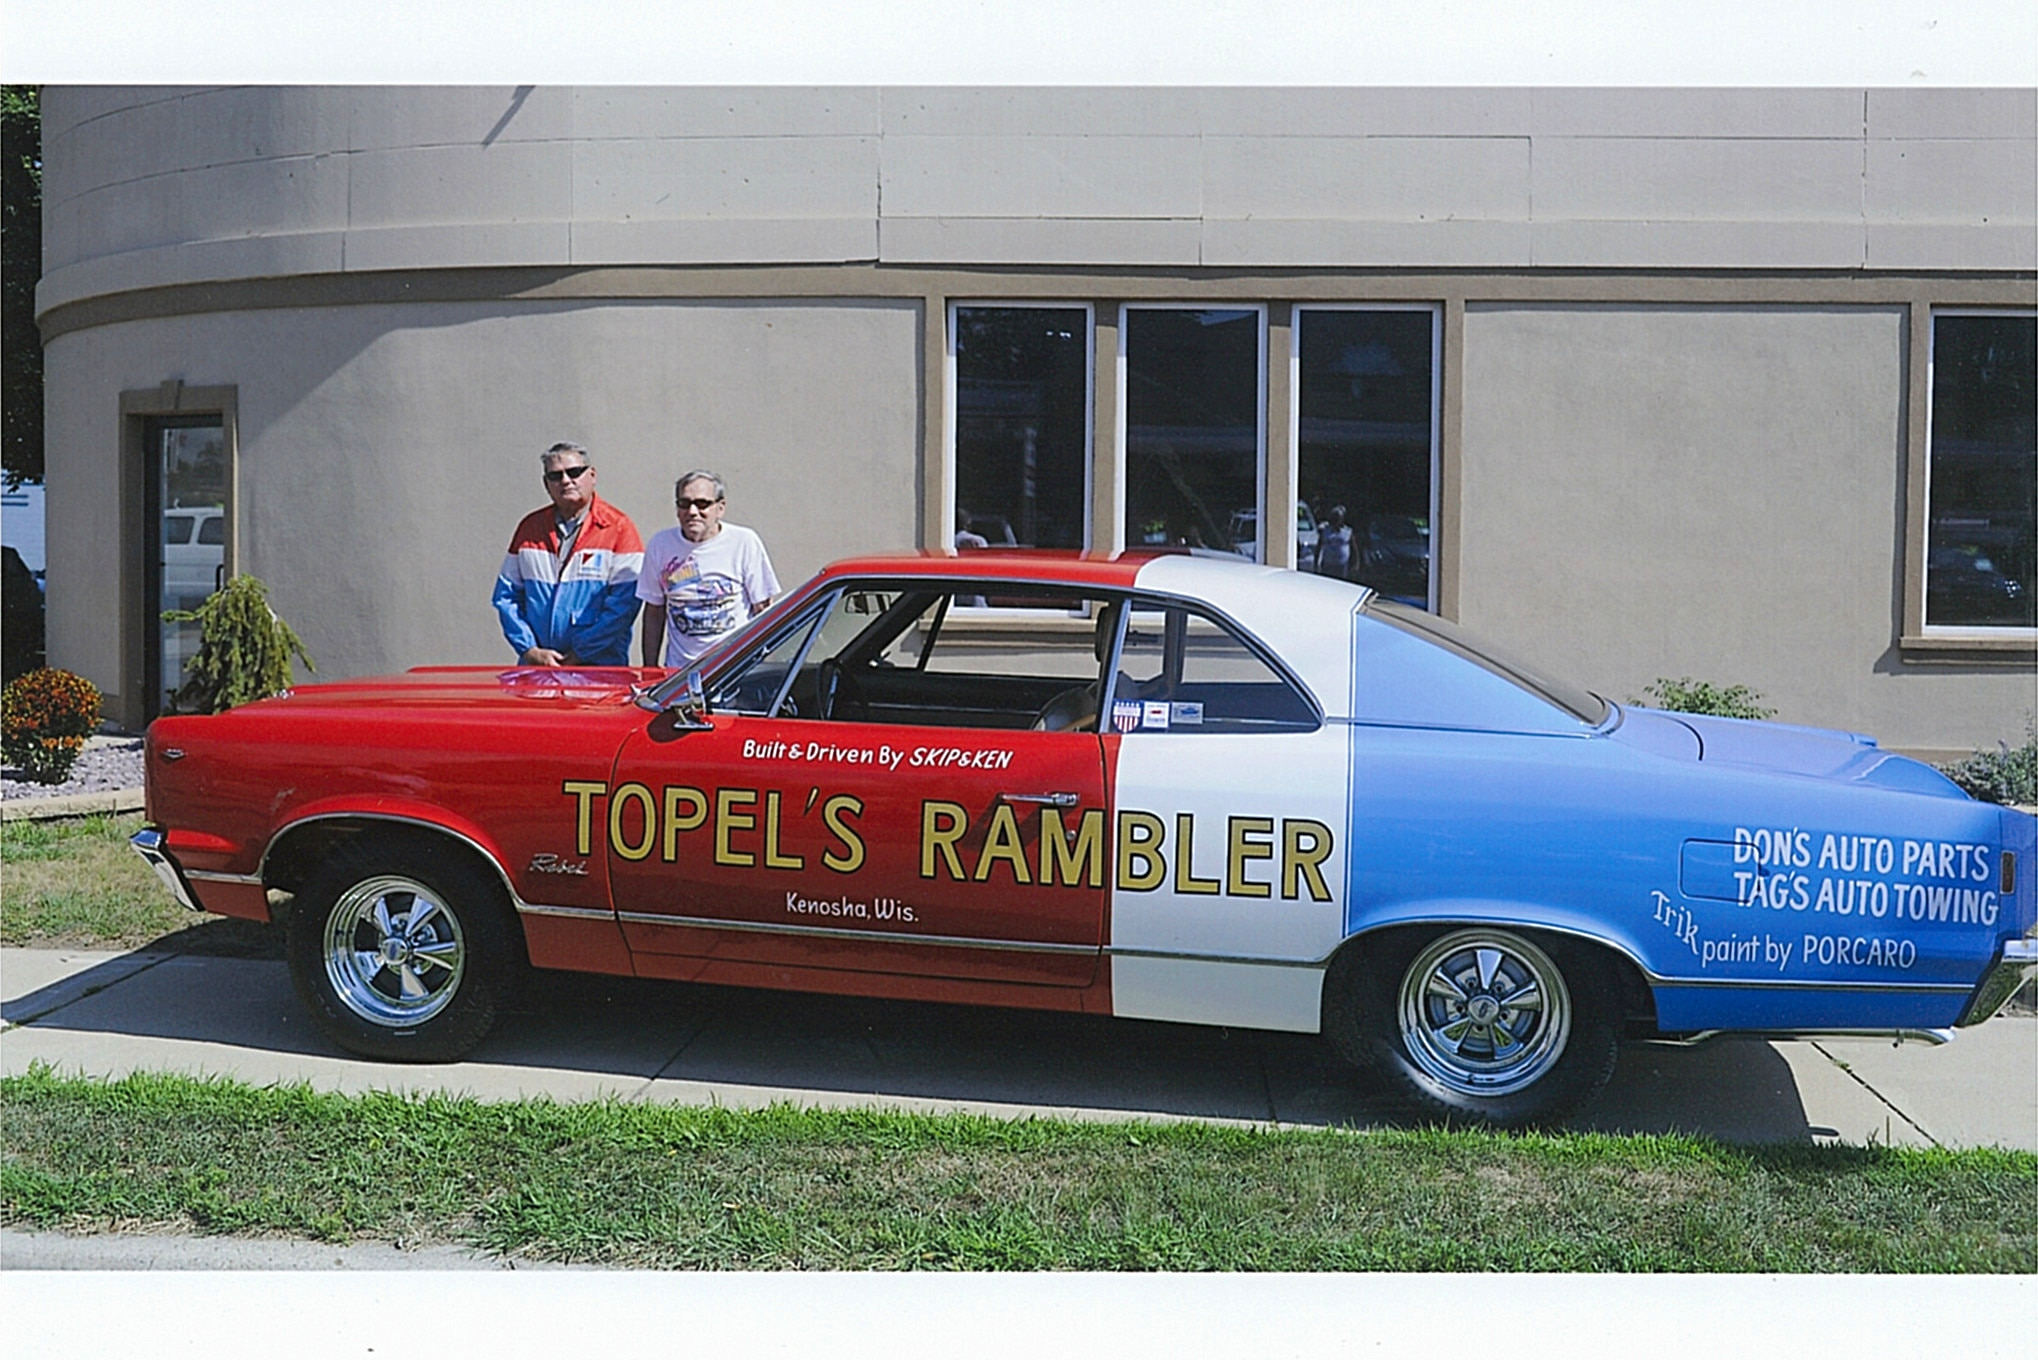 009-aherns-topel-1967-amc-rambler-rebel-super-stock-graves-oettel.tiff